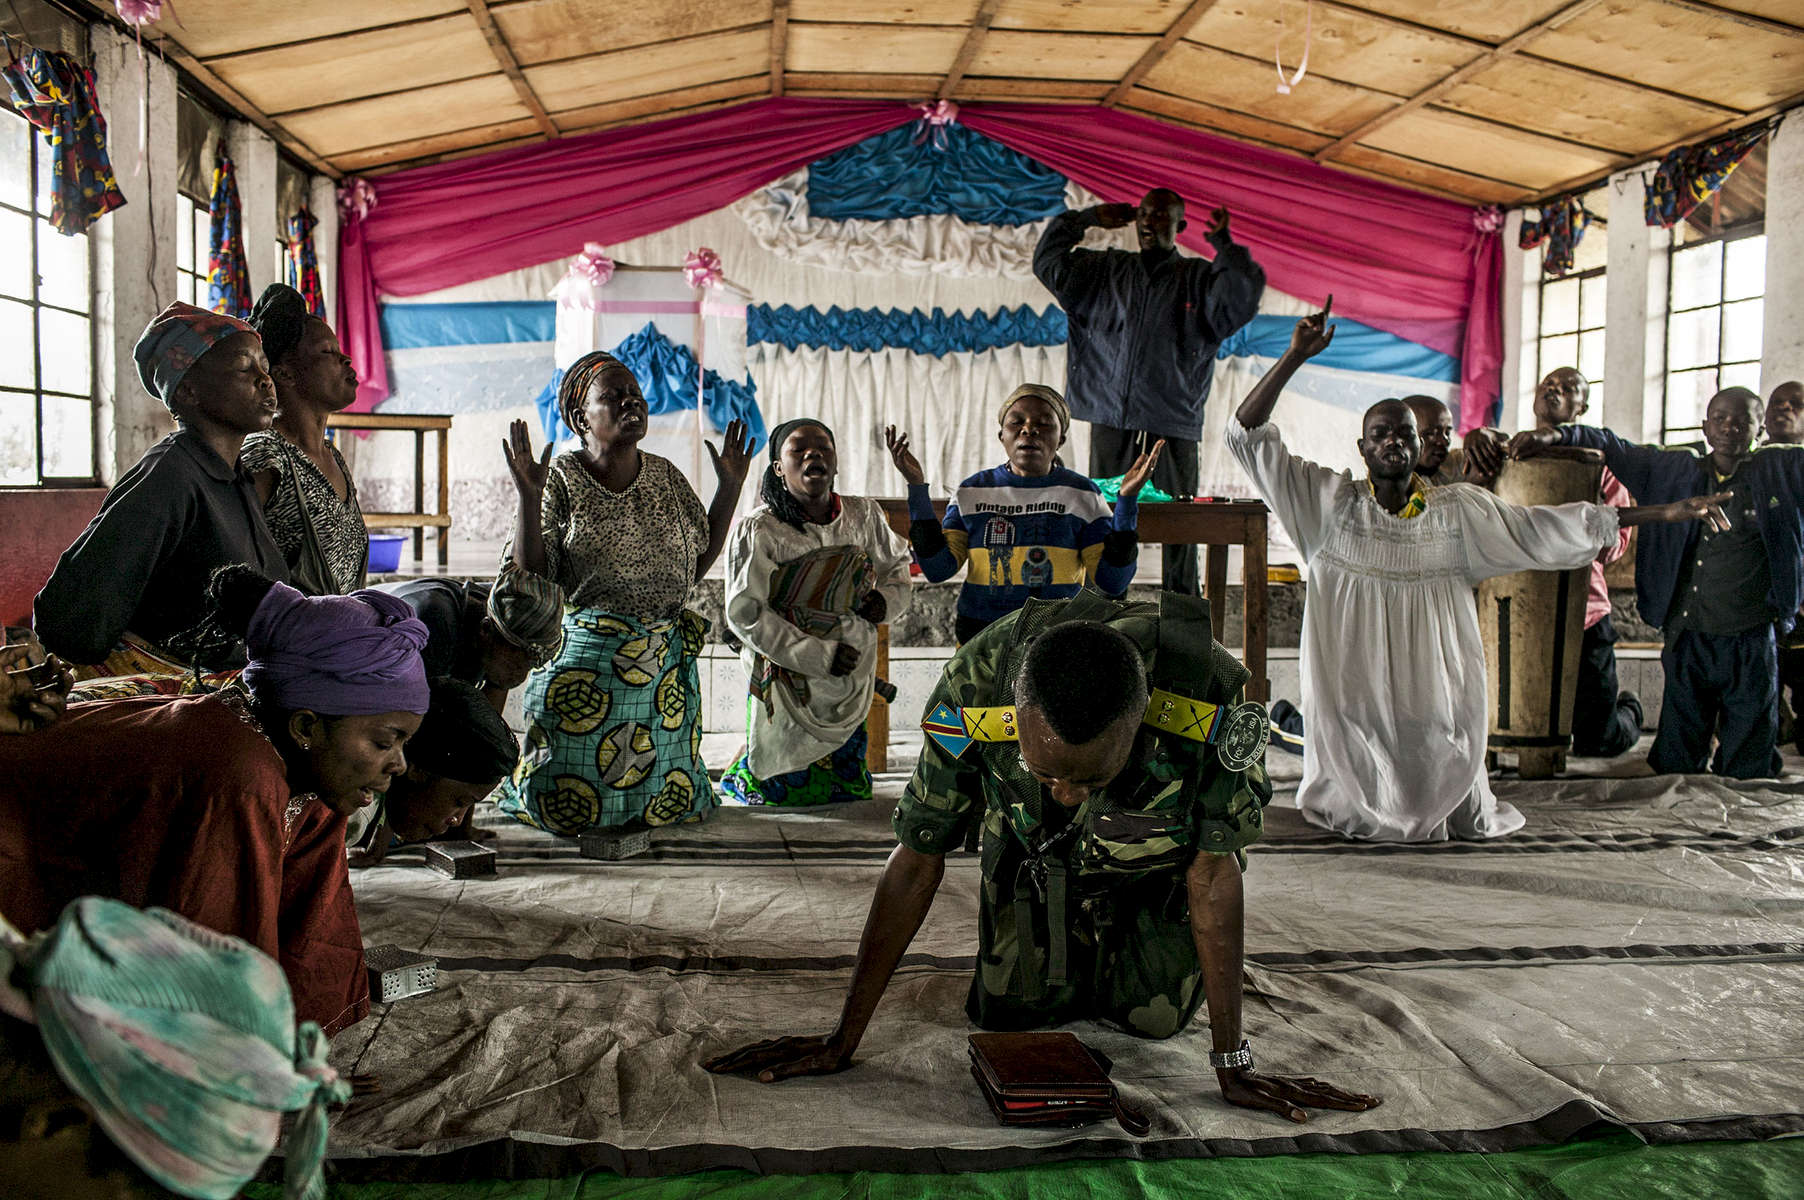 A military chaplain conducts a prayer ceremony for the family members of soldiers inside the main military camp in Goma.